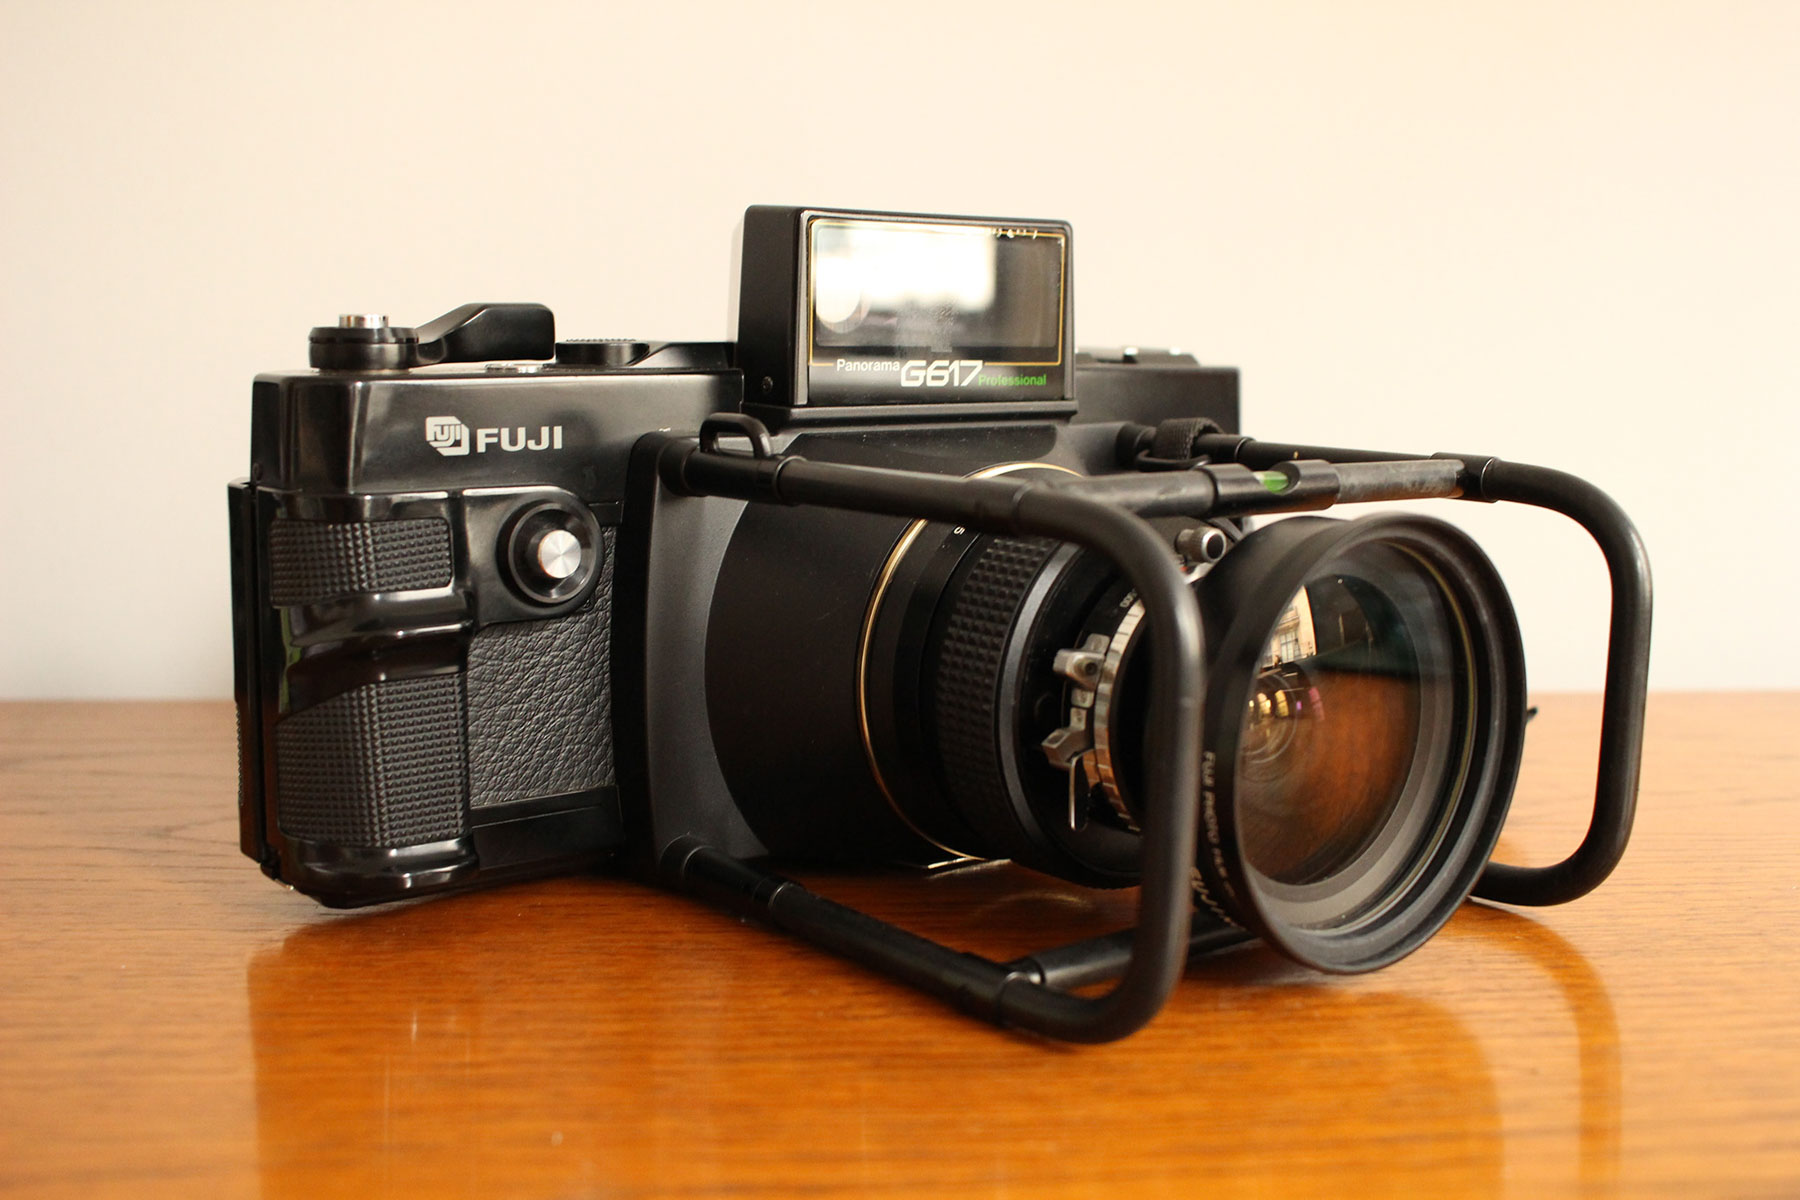 Fujica Panorama G617 Professional - Front right